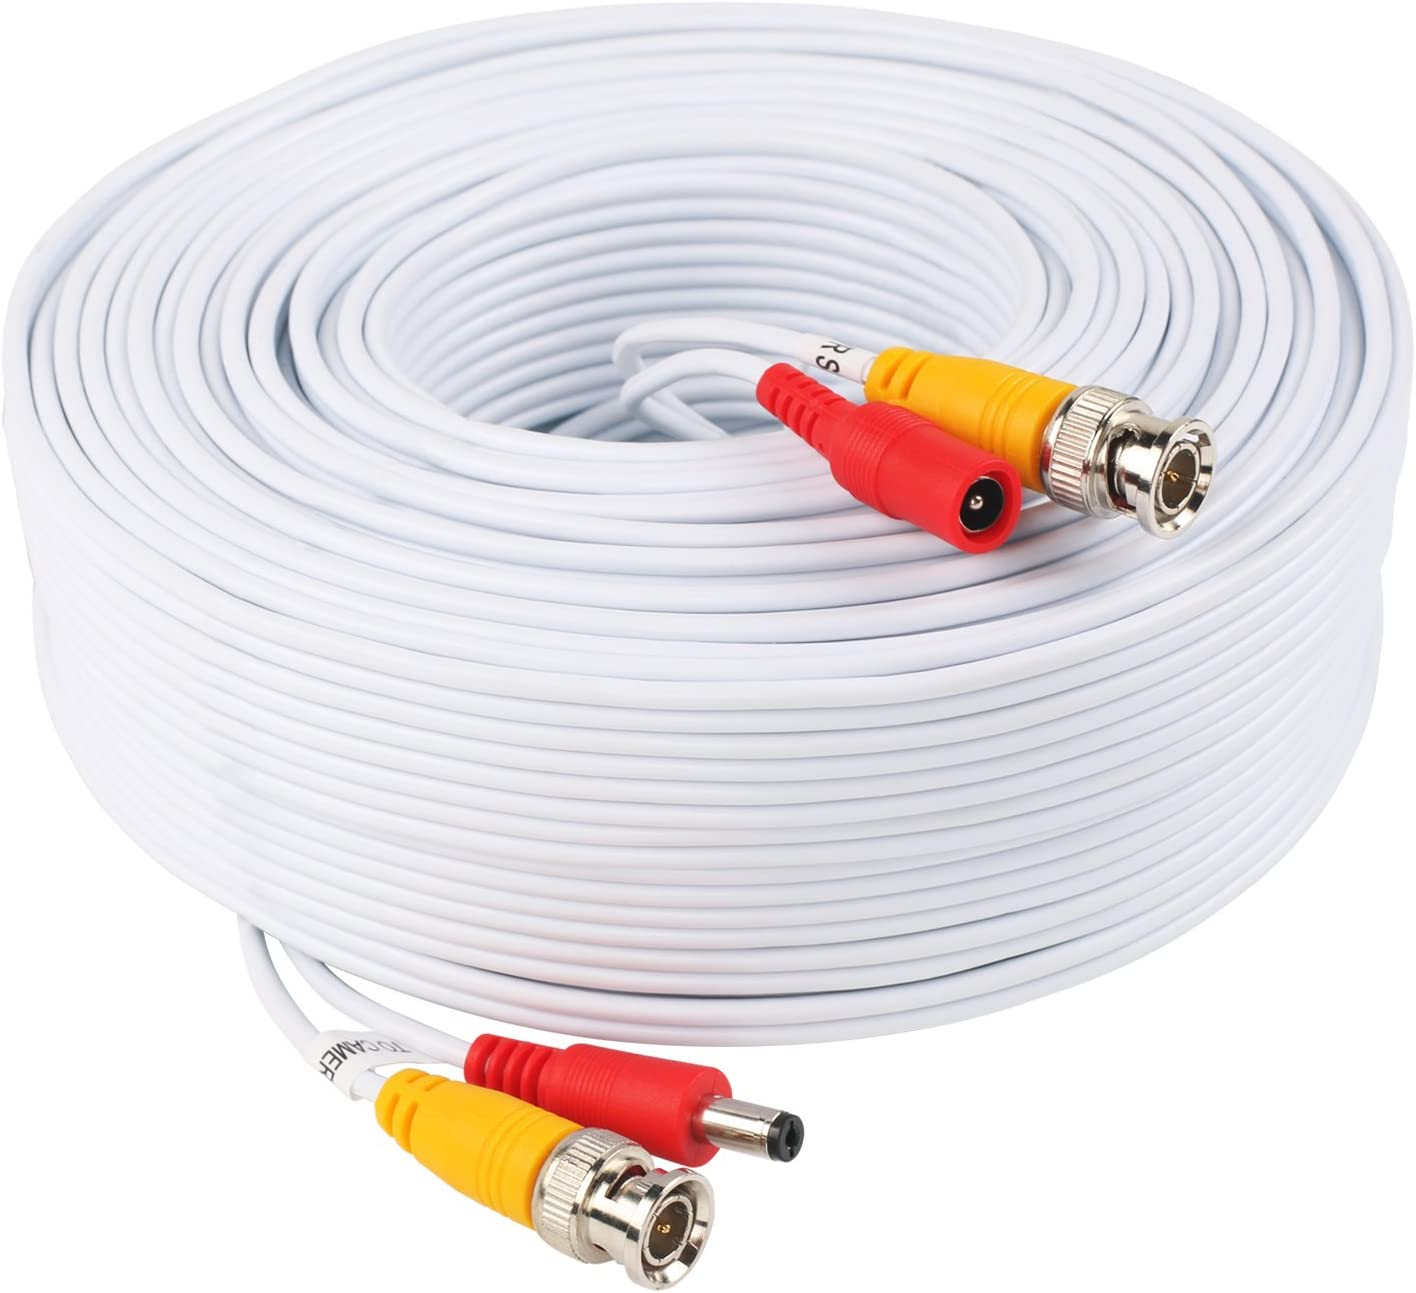 BNC Video Power Cable 100 Feet Pre-Made All-in-One Video Security Camera Cable Wire with Two Connectors for CCTV DVR Surveillance System